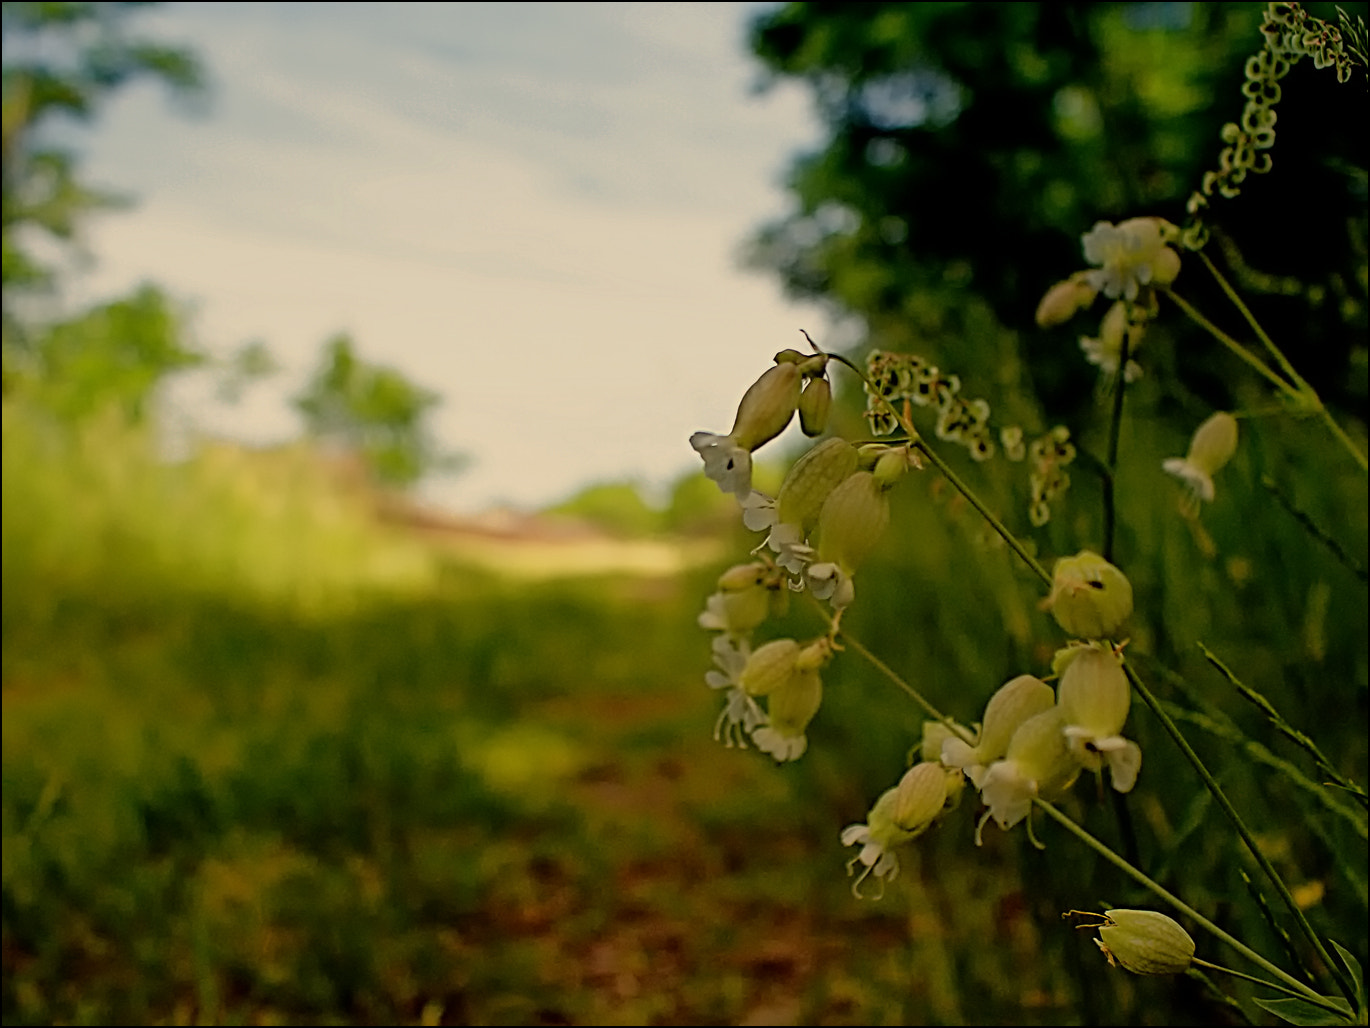 Photograph Summertime by RobN 185 on 500px